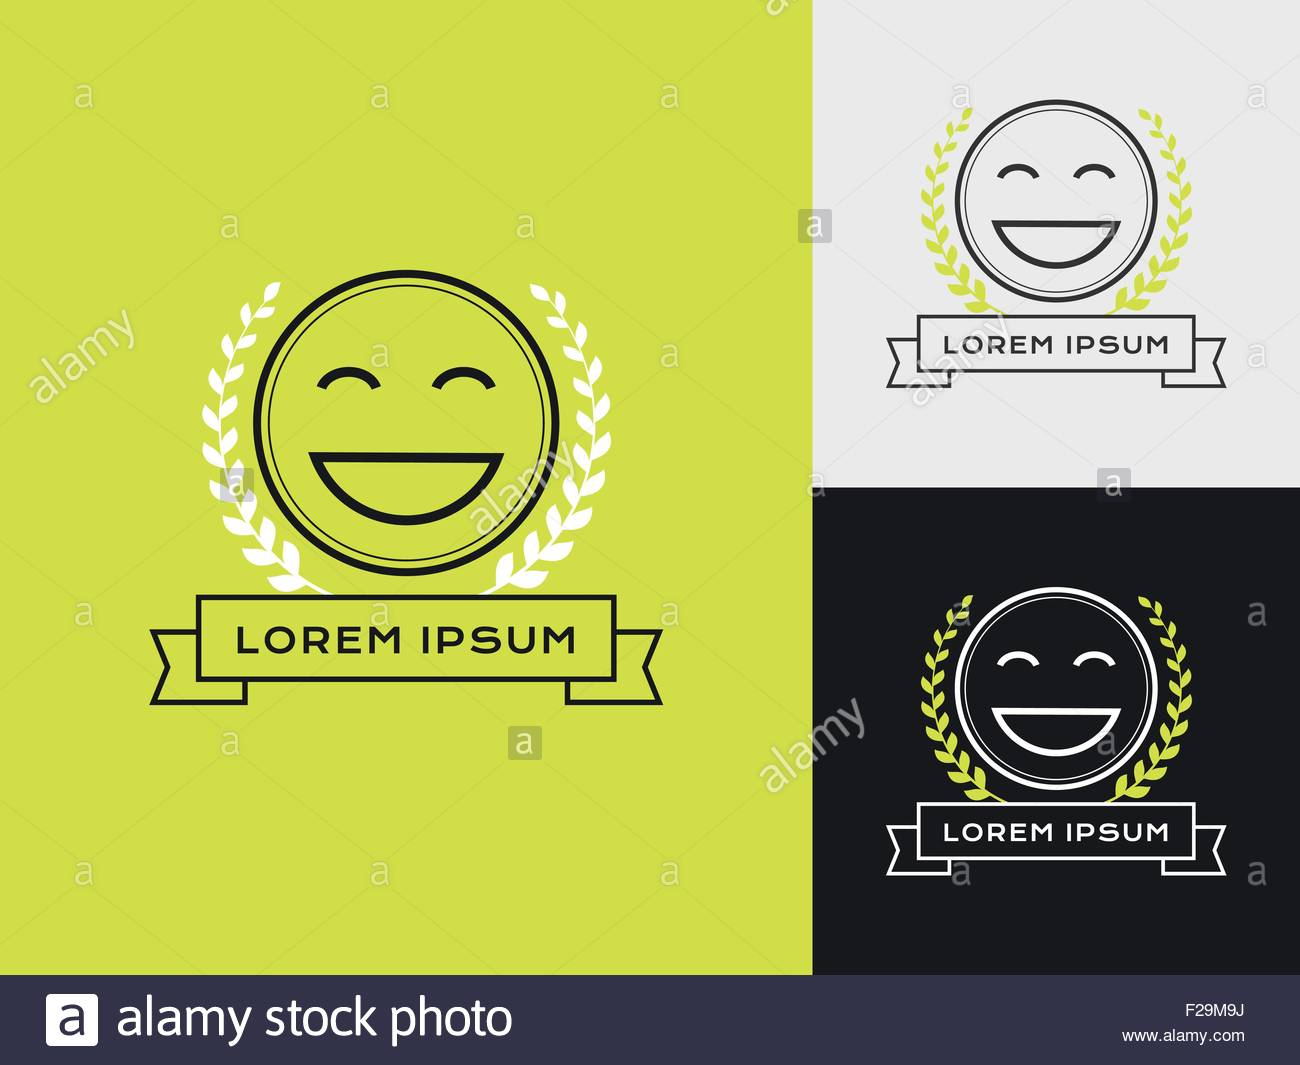 Sales consultant, sales trainer or mystery shopper company logo. Customer satisfaction symbol. - Stock Image